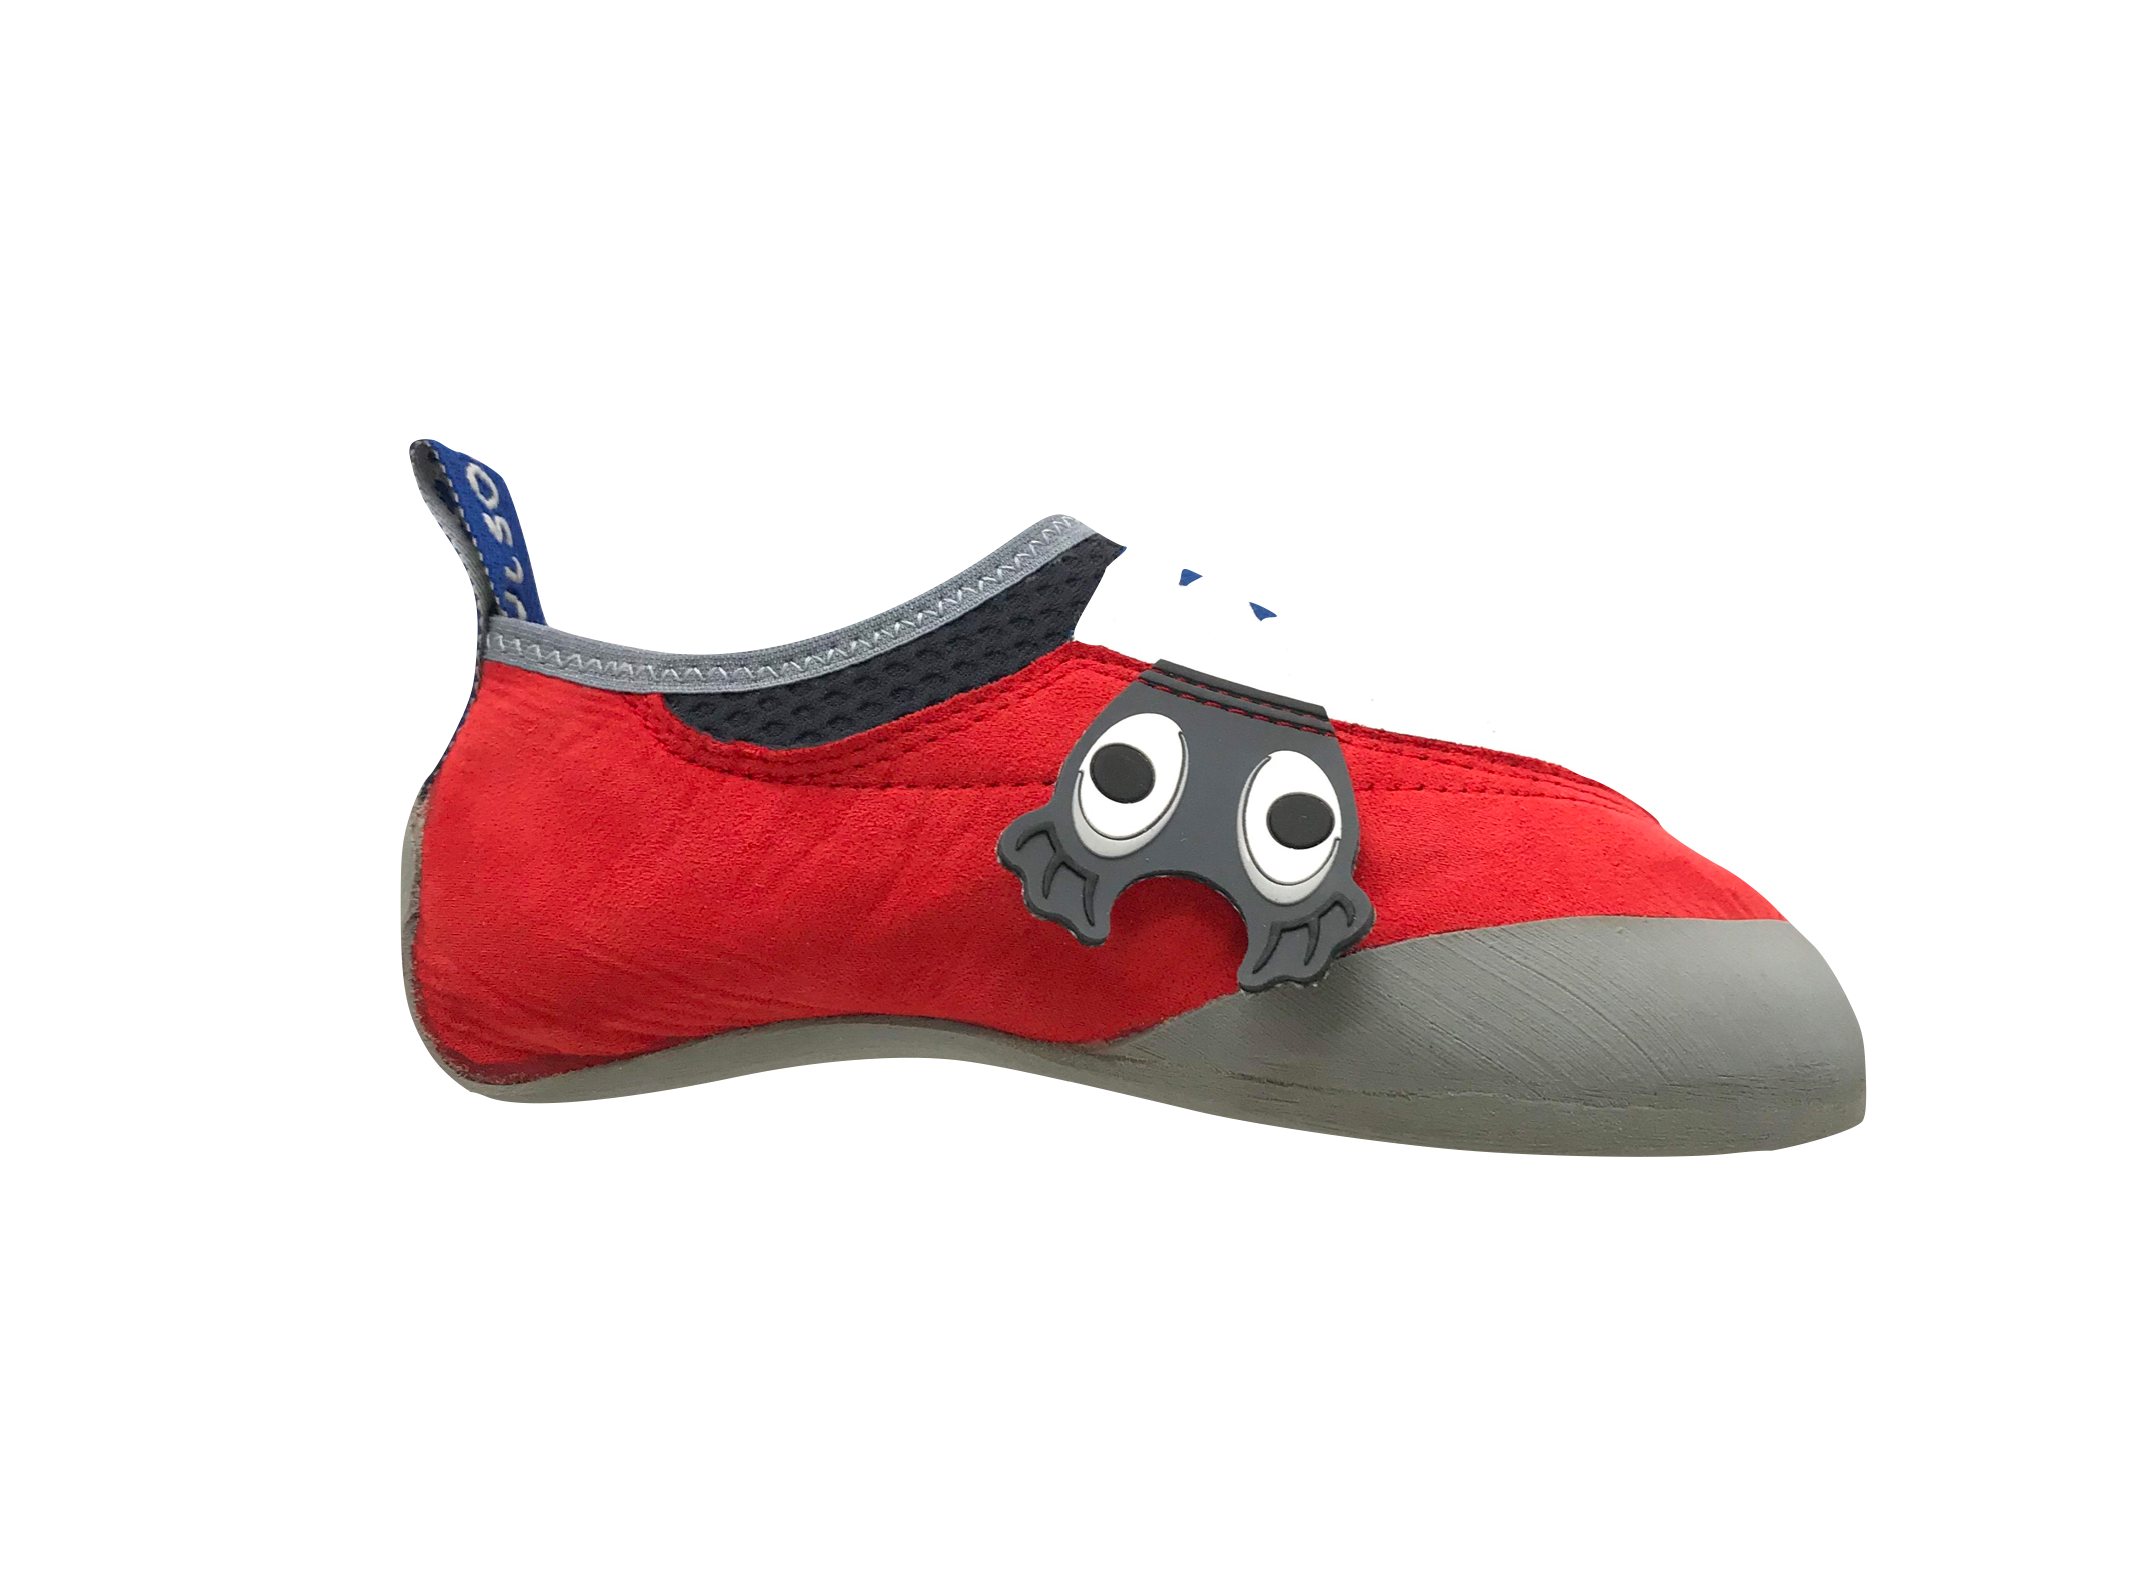 STEP KIDS TULSON TOLF CLIMBING SHOES PIES DE GATO ESCALADA CHILDREN NIÑOS